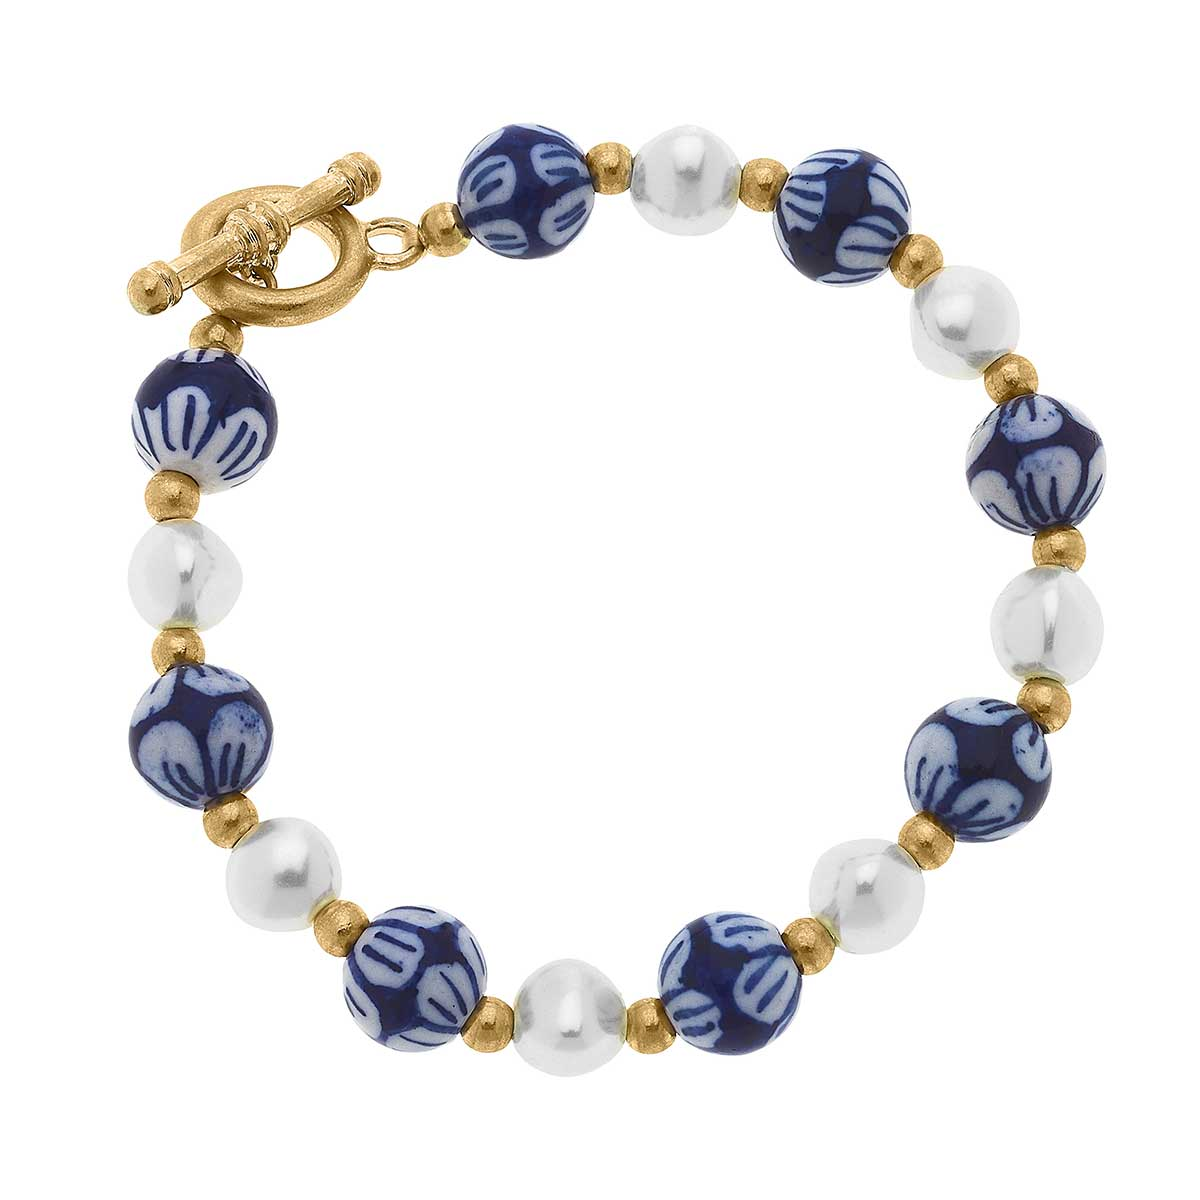 Charlotte Chinoiserie & Pearl T-Bar Bracelet in Blue & White